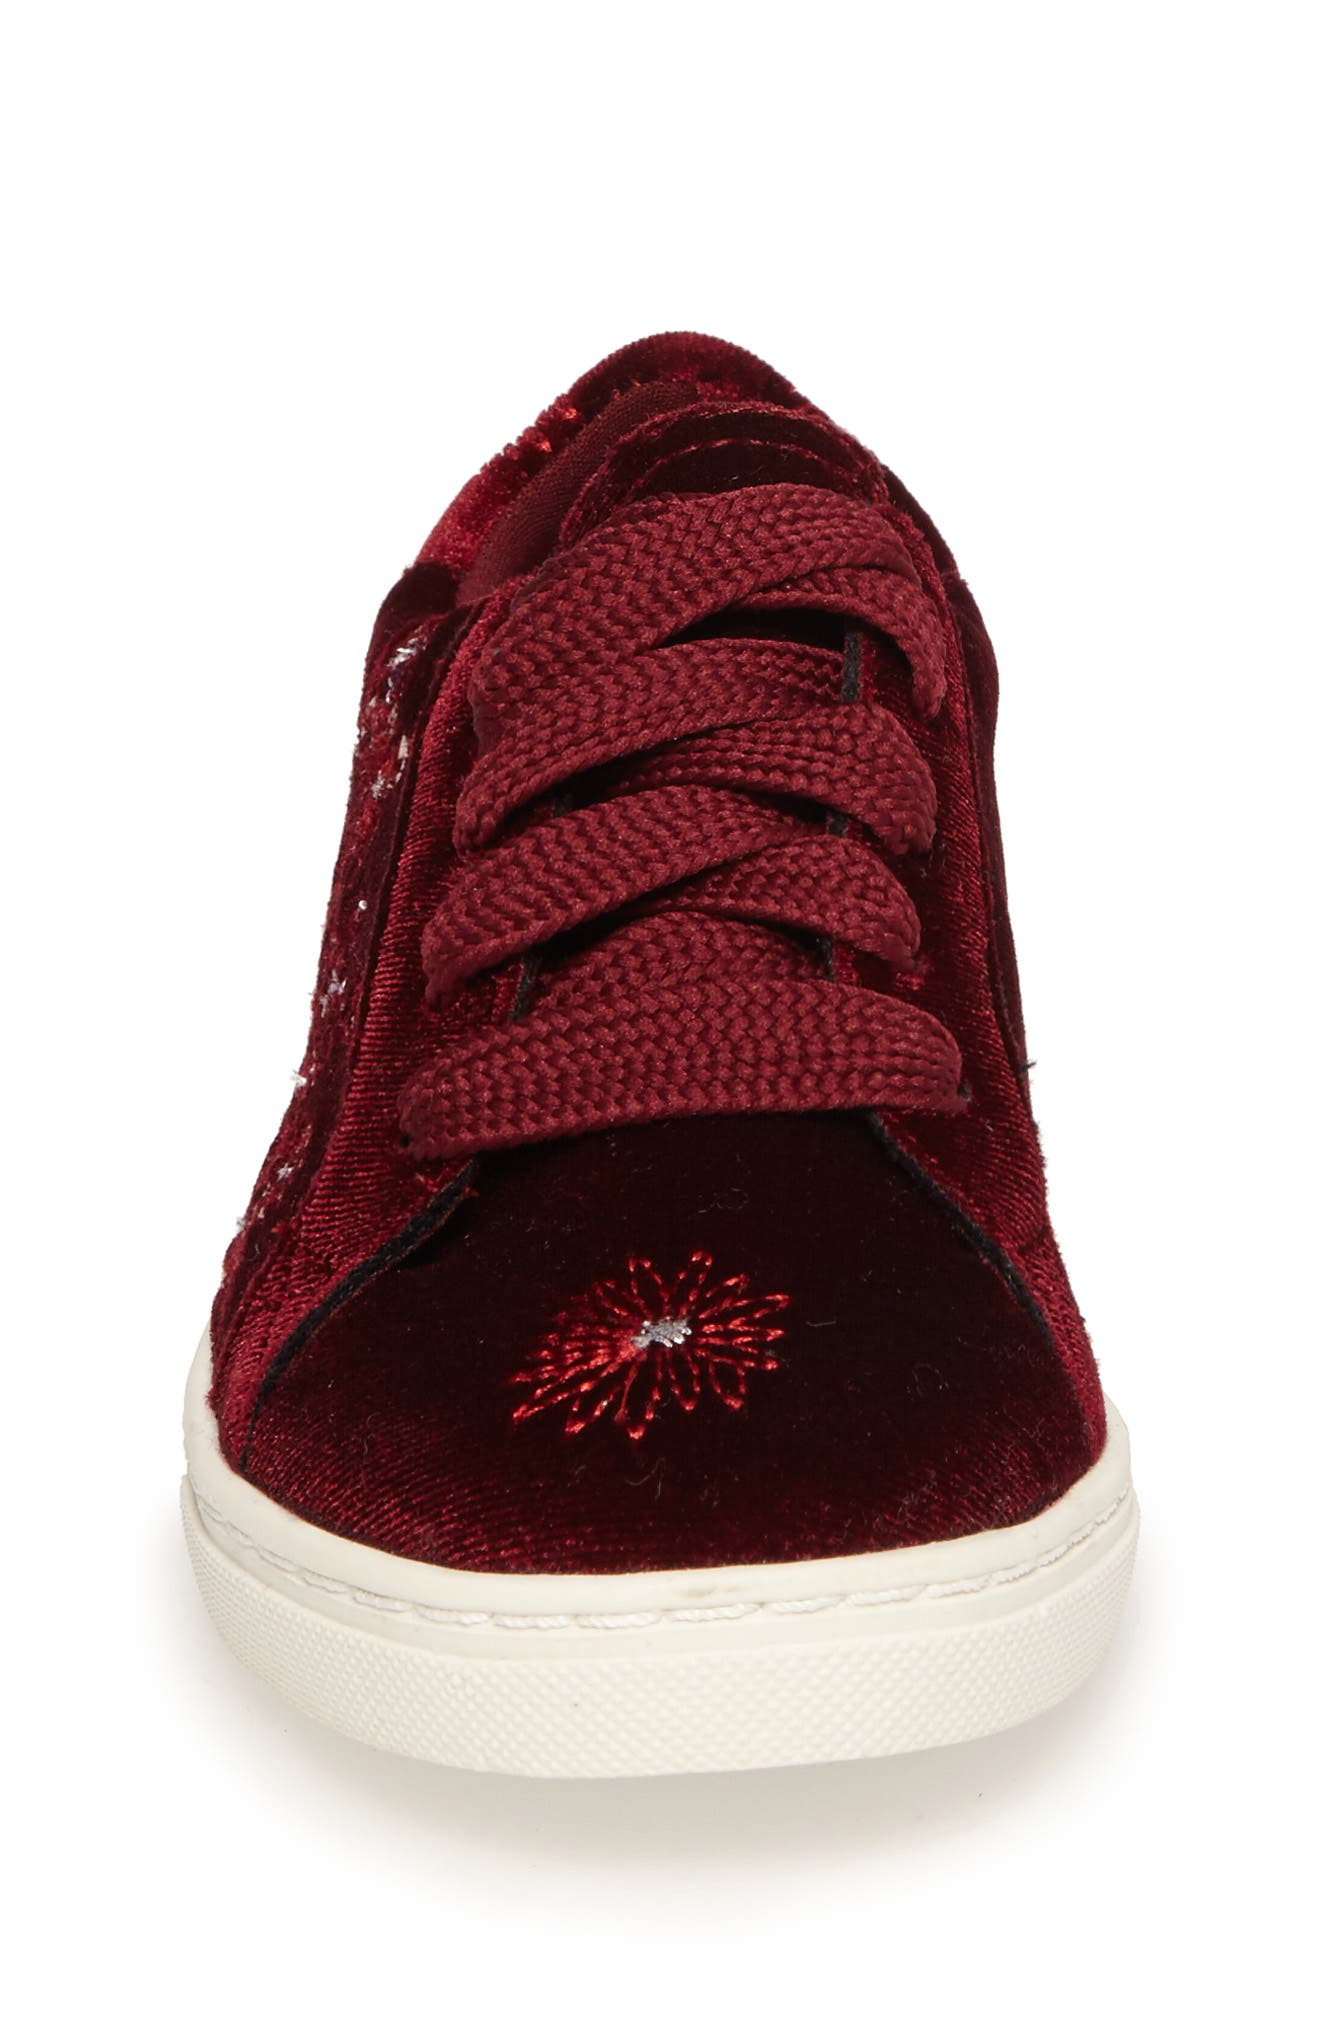 Zolly Floral Embroidered Sneaker,                             Alternate thumbnail 4, color,                             602